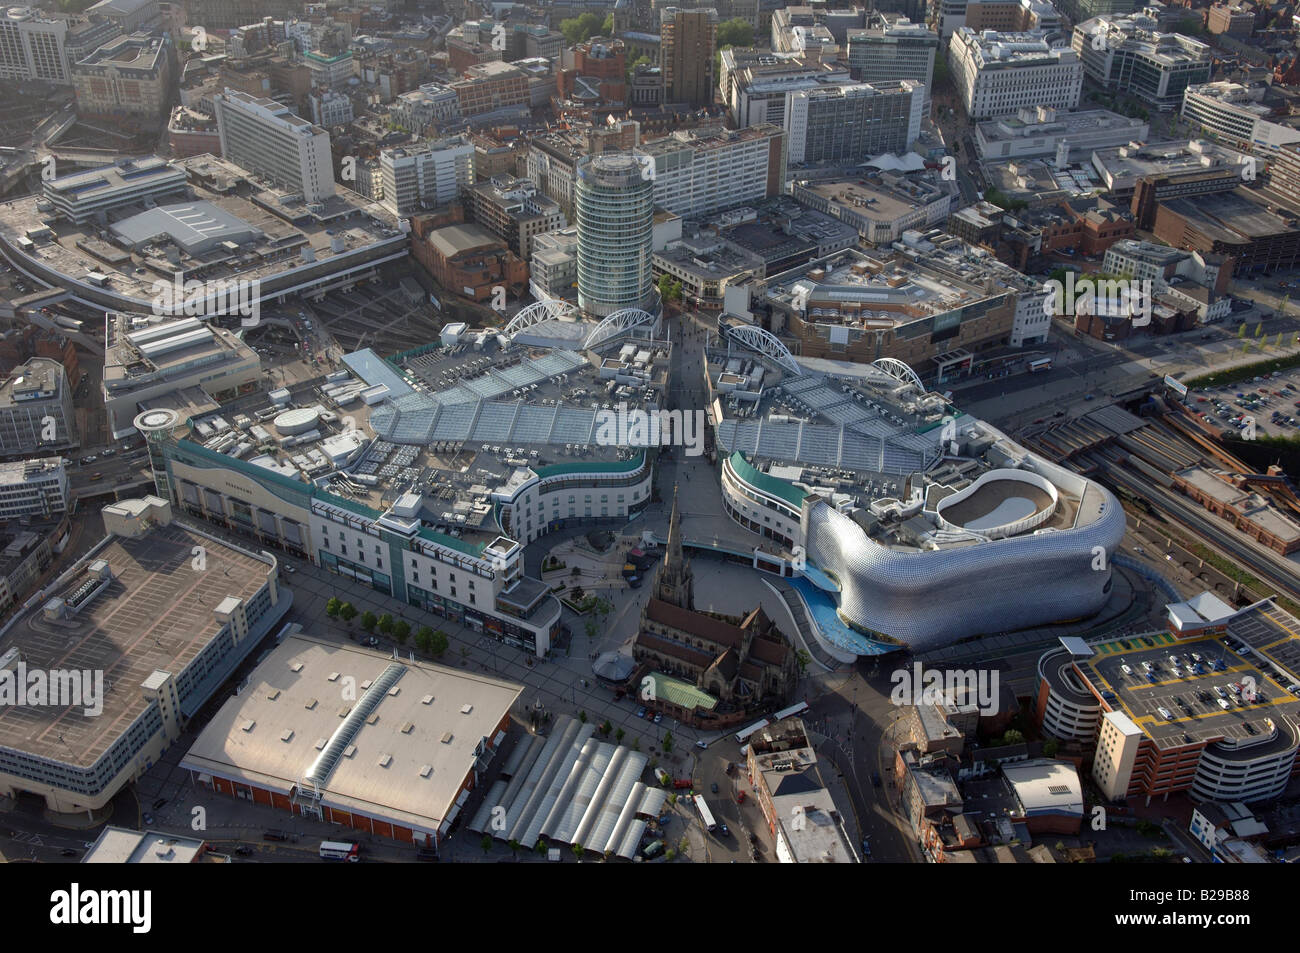 Birmingham Centre Date 12 03 2008 Ref ZB648 111149 0006 COMPULSORY CREDIT World Pictures Photoshot - Stock Image